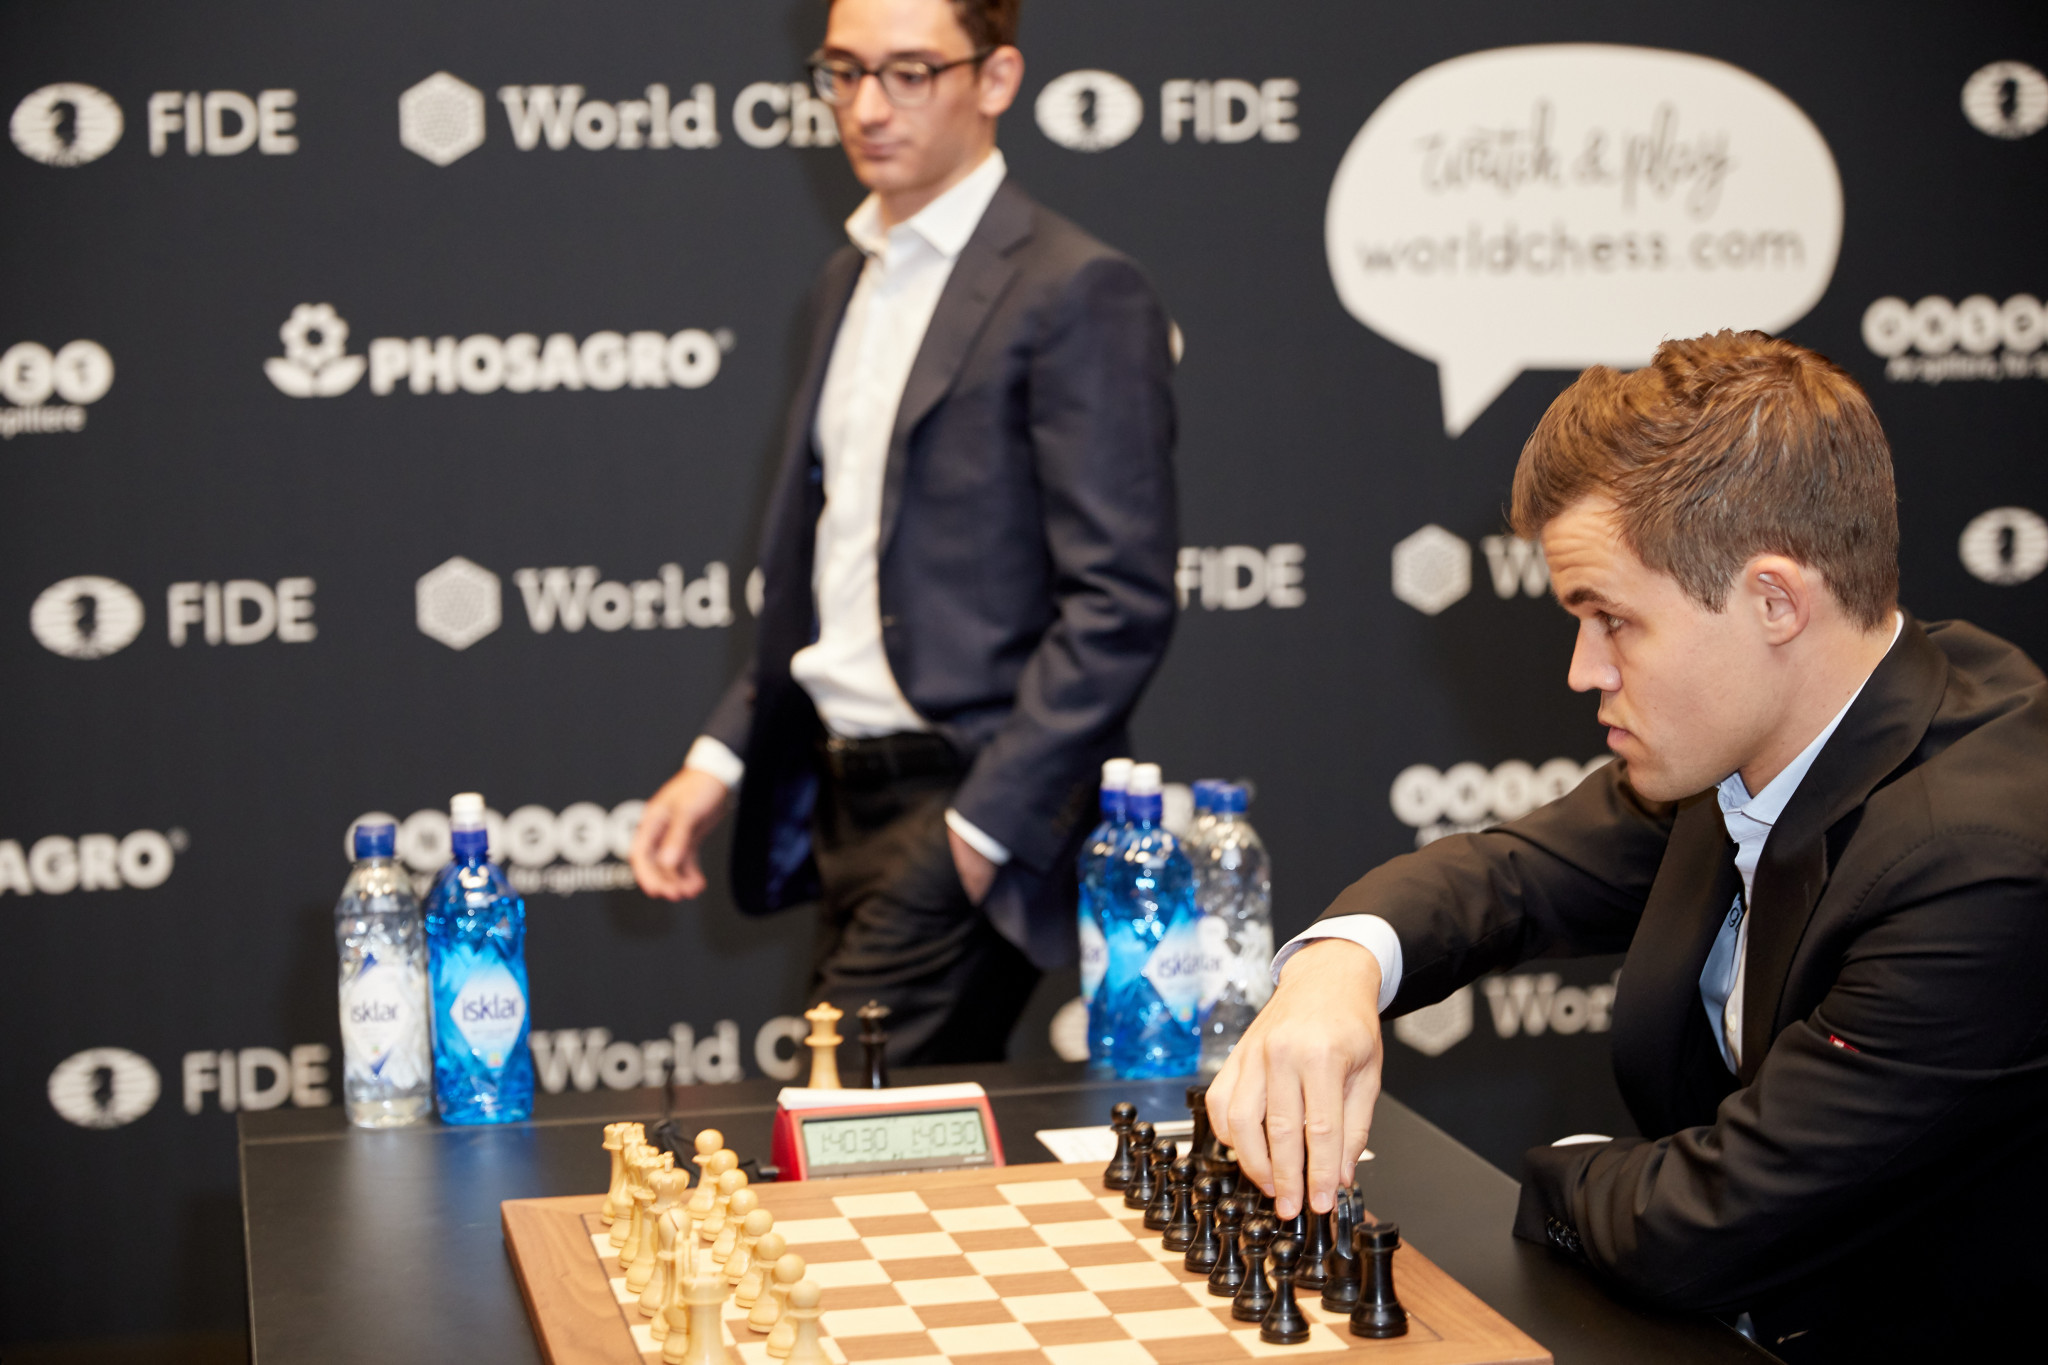 America's Fabiano Caruana is locked in a tense struggle with Norway's Magnus Carlsen for the World Chess Championship after a record 11 straight draws in London ©Getty Images